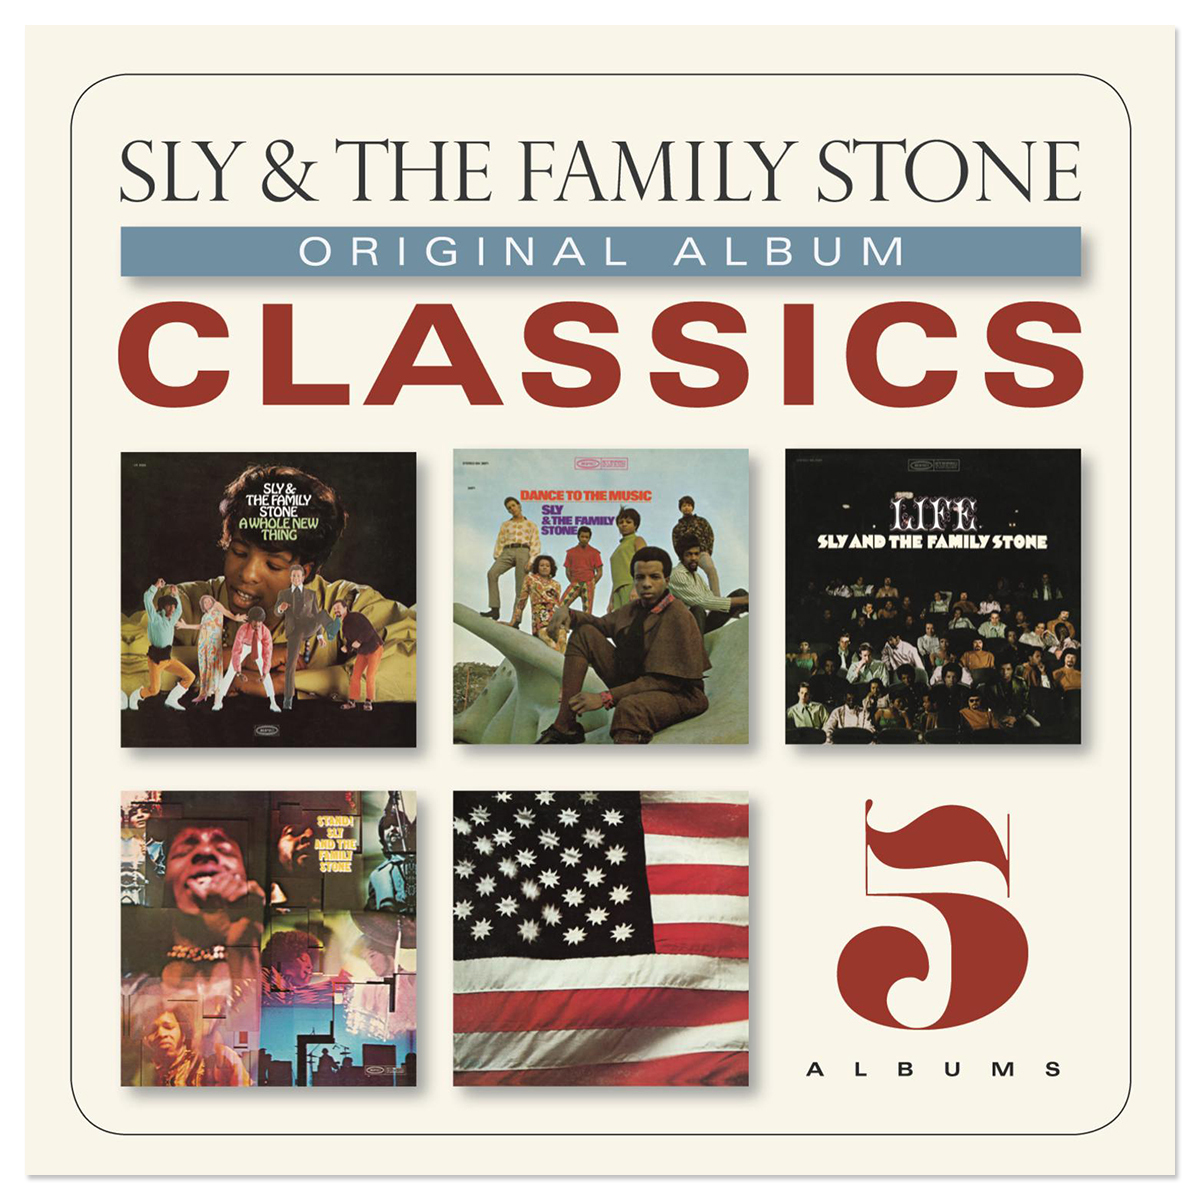 Sly & The Family Stone Original Album Classics [5 Cds] (US Artwork) CD